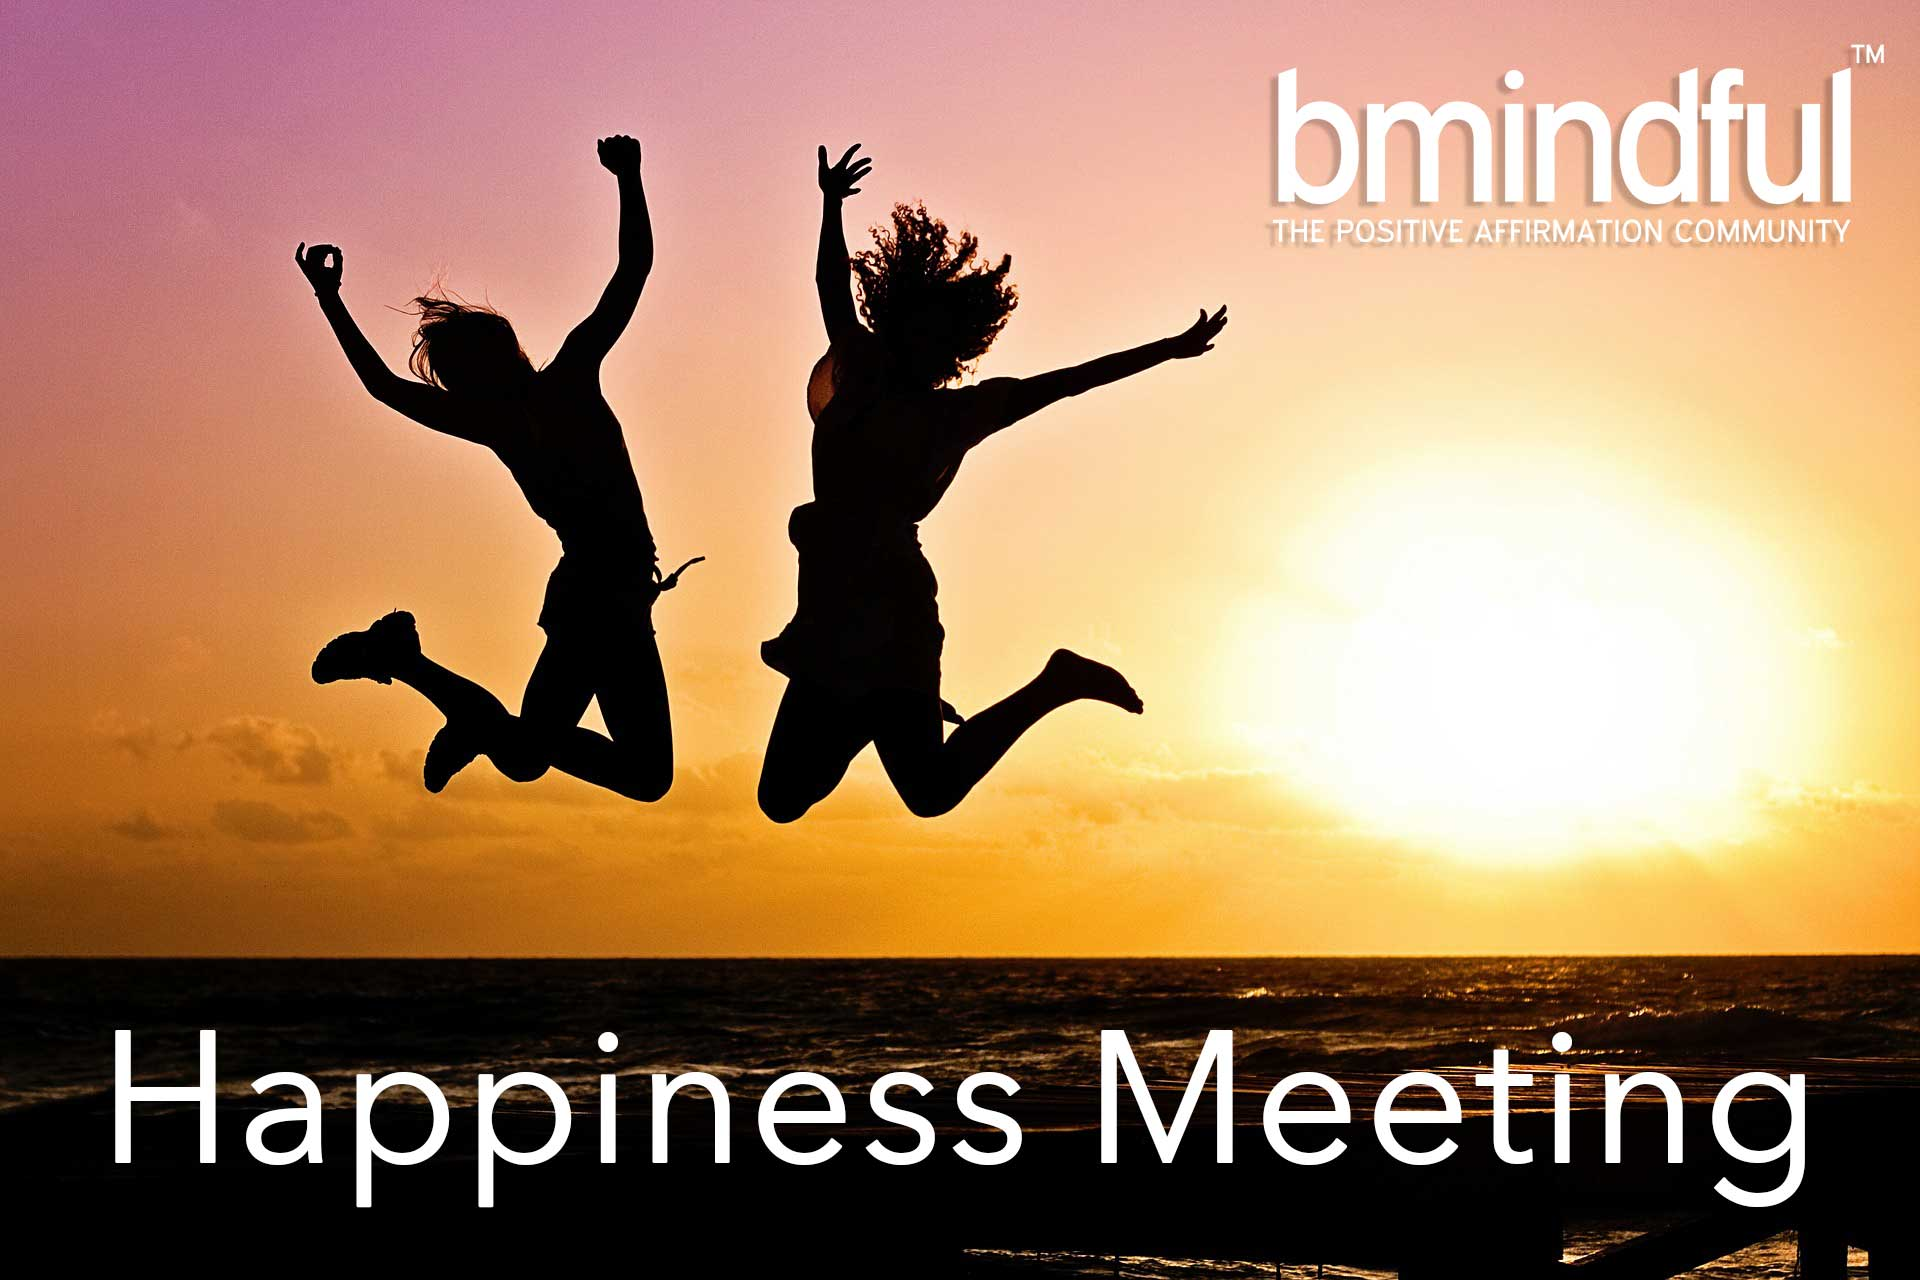 happiness-meeting-sample2.jpg (1920×1280)